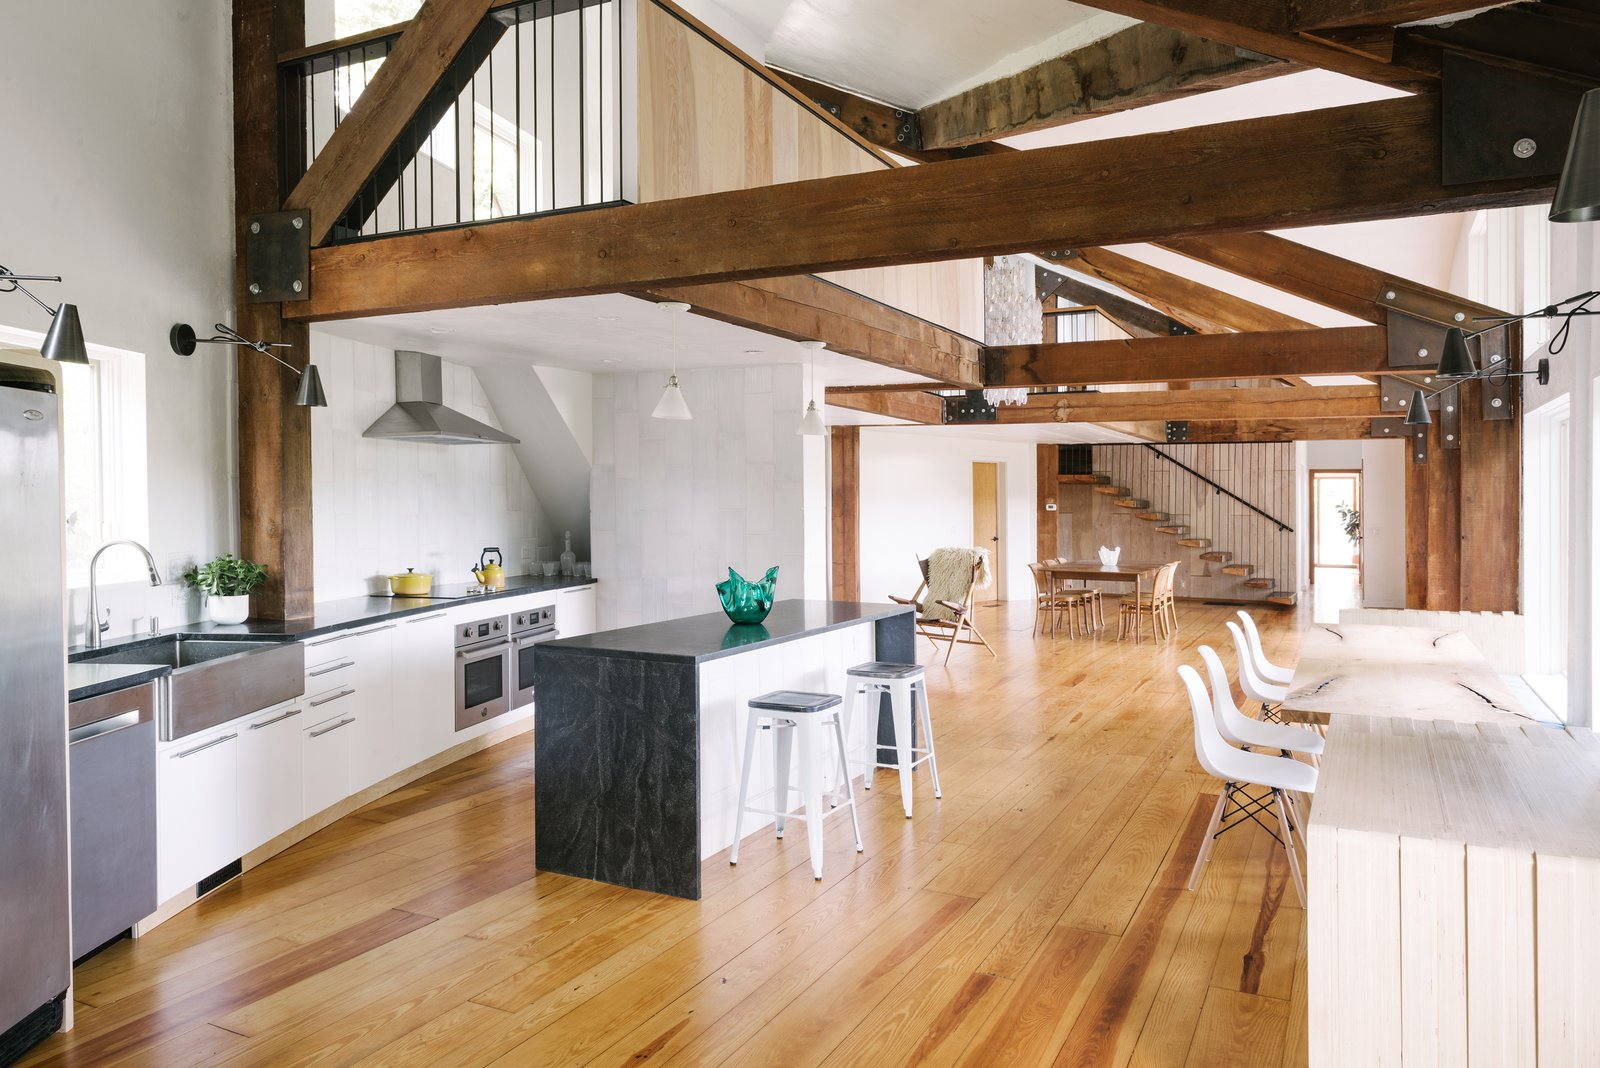 The expansive ground floor was further opened up with a new balcony design, great stairs, and a new kitchen that creates a home ideal for both large entertaining and intimate family dinners.